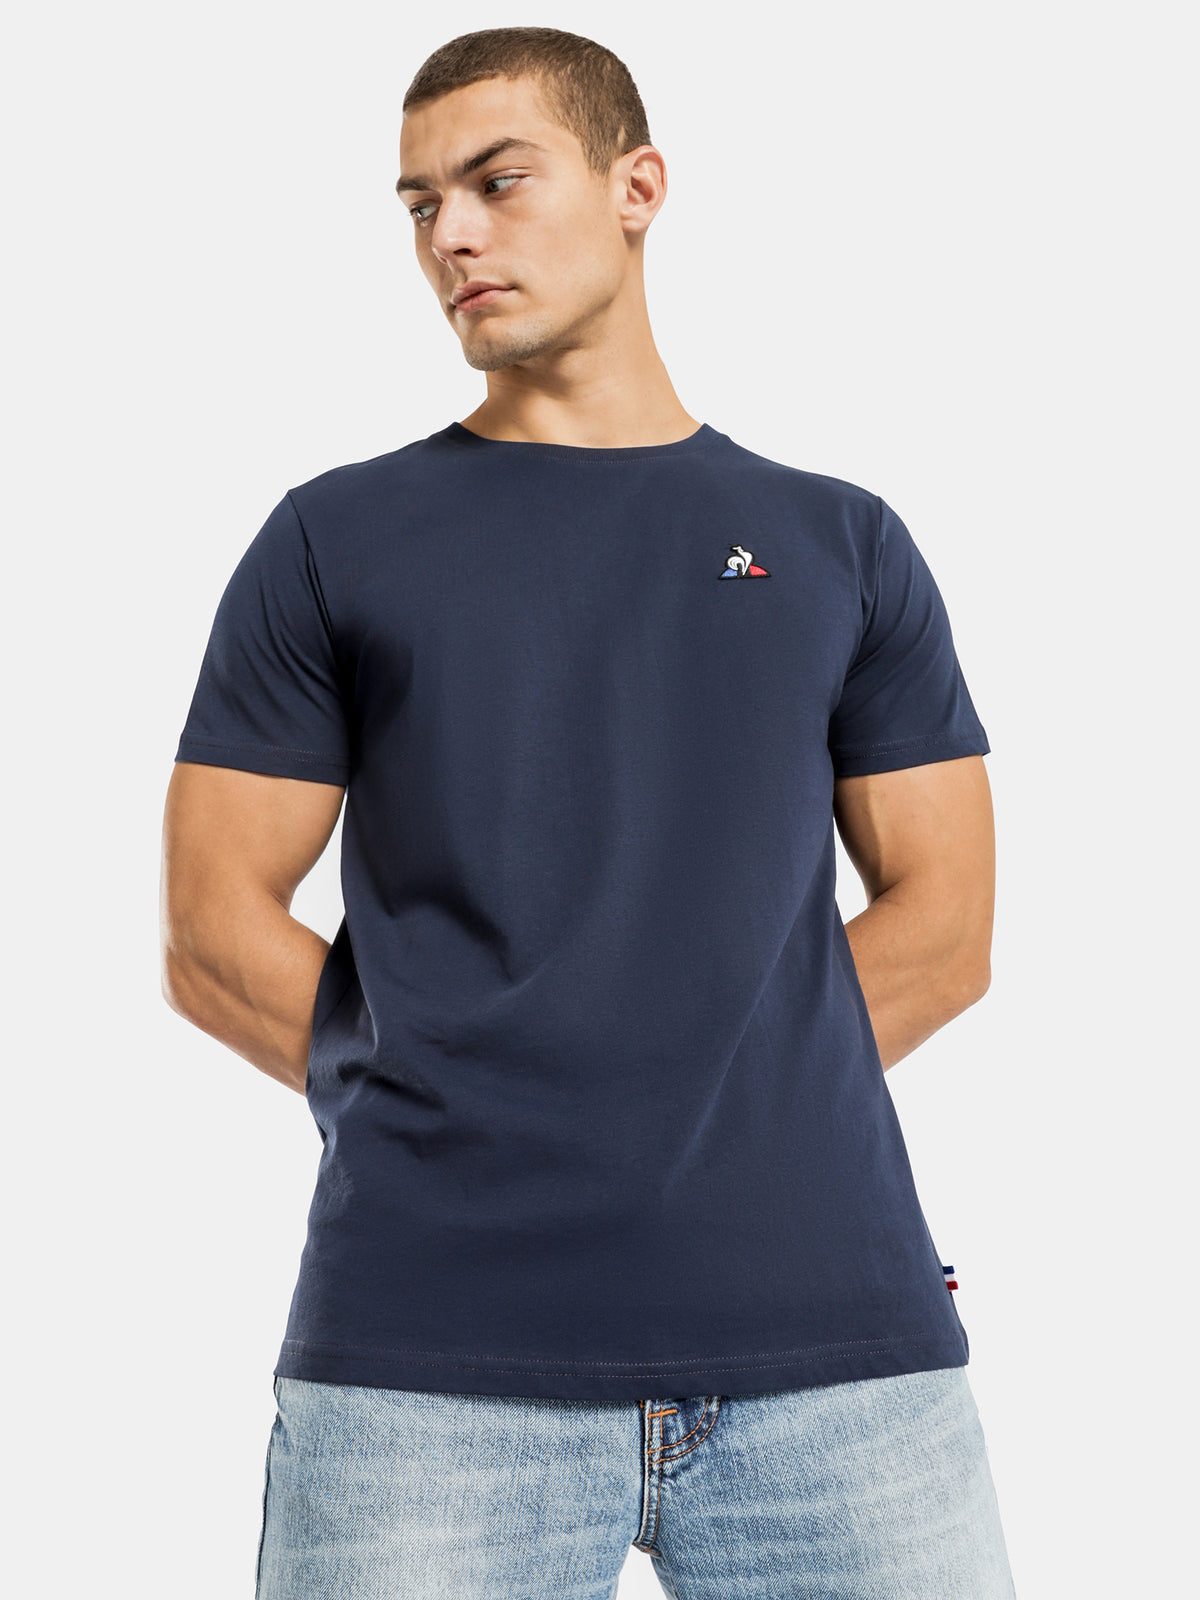 Essential T-Shirt in Dress Blues